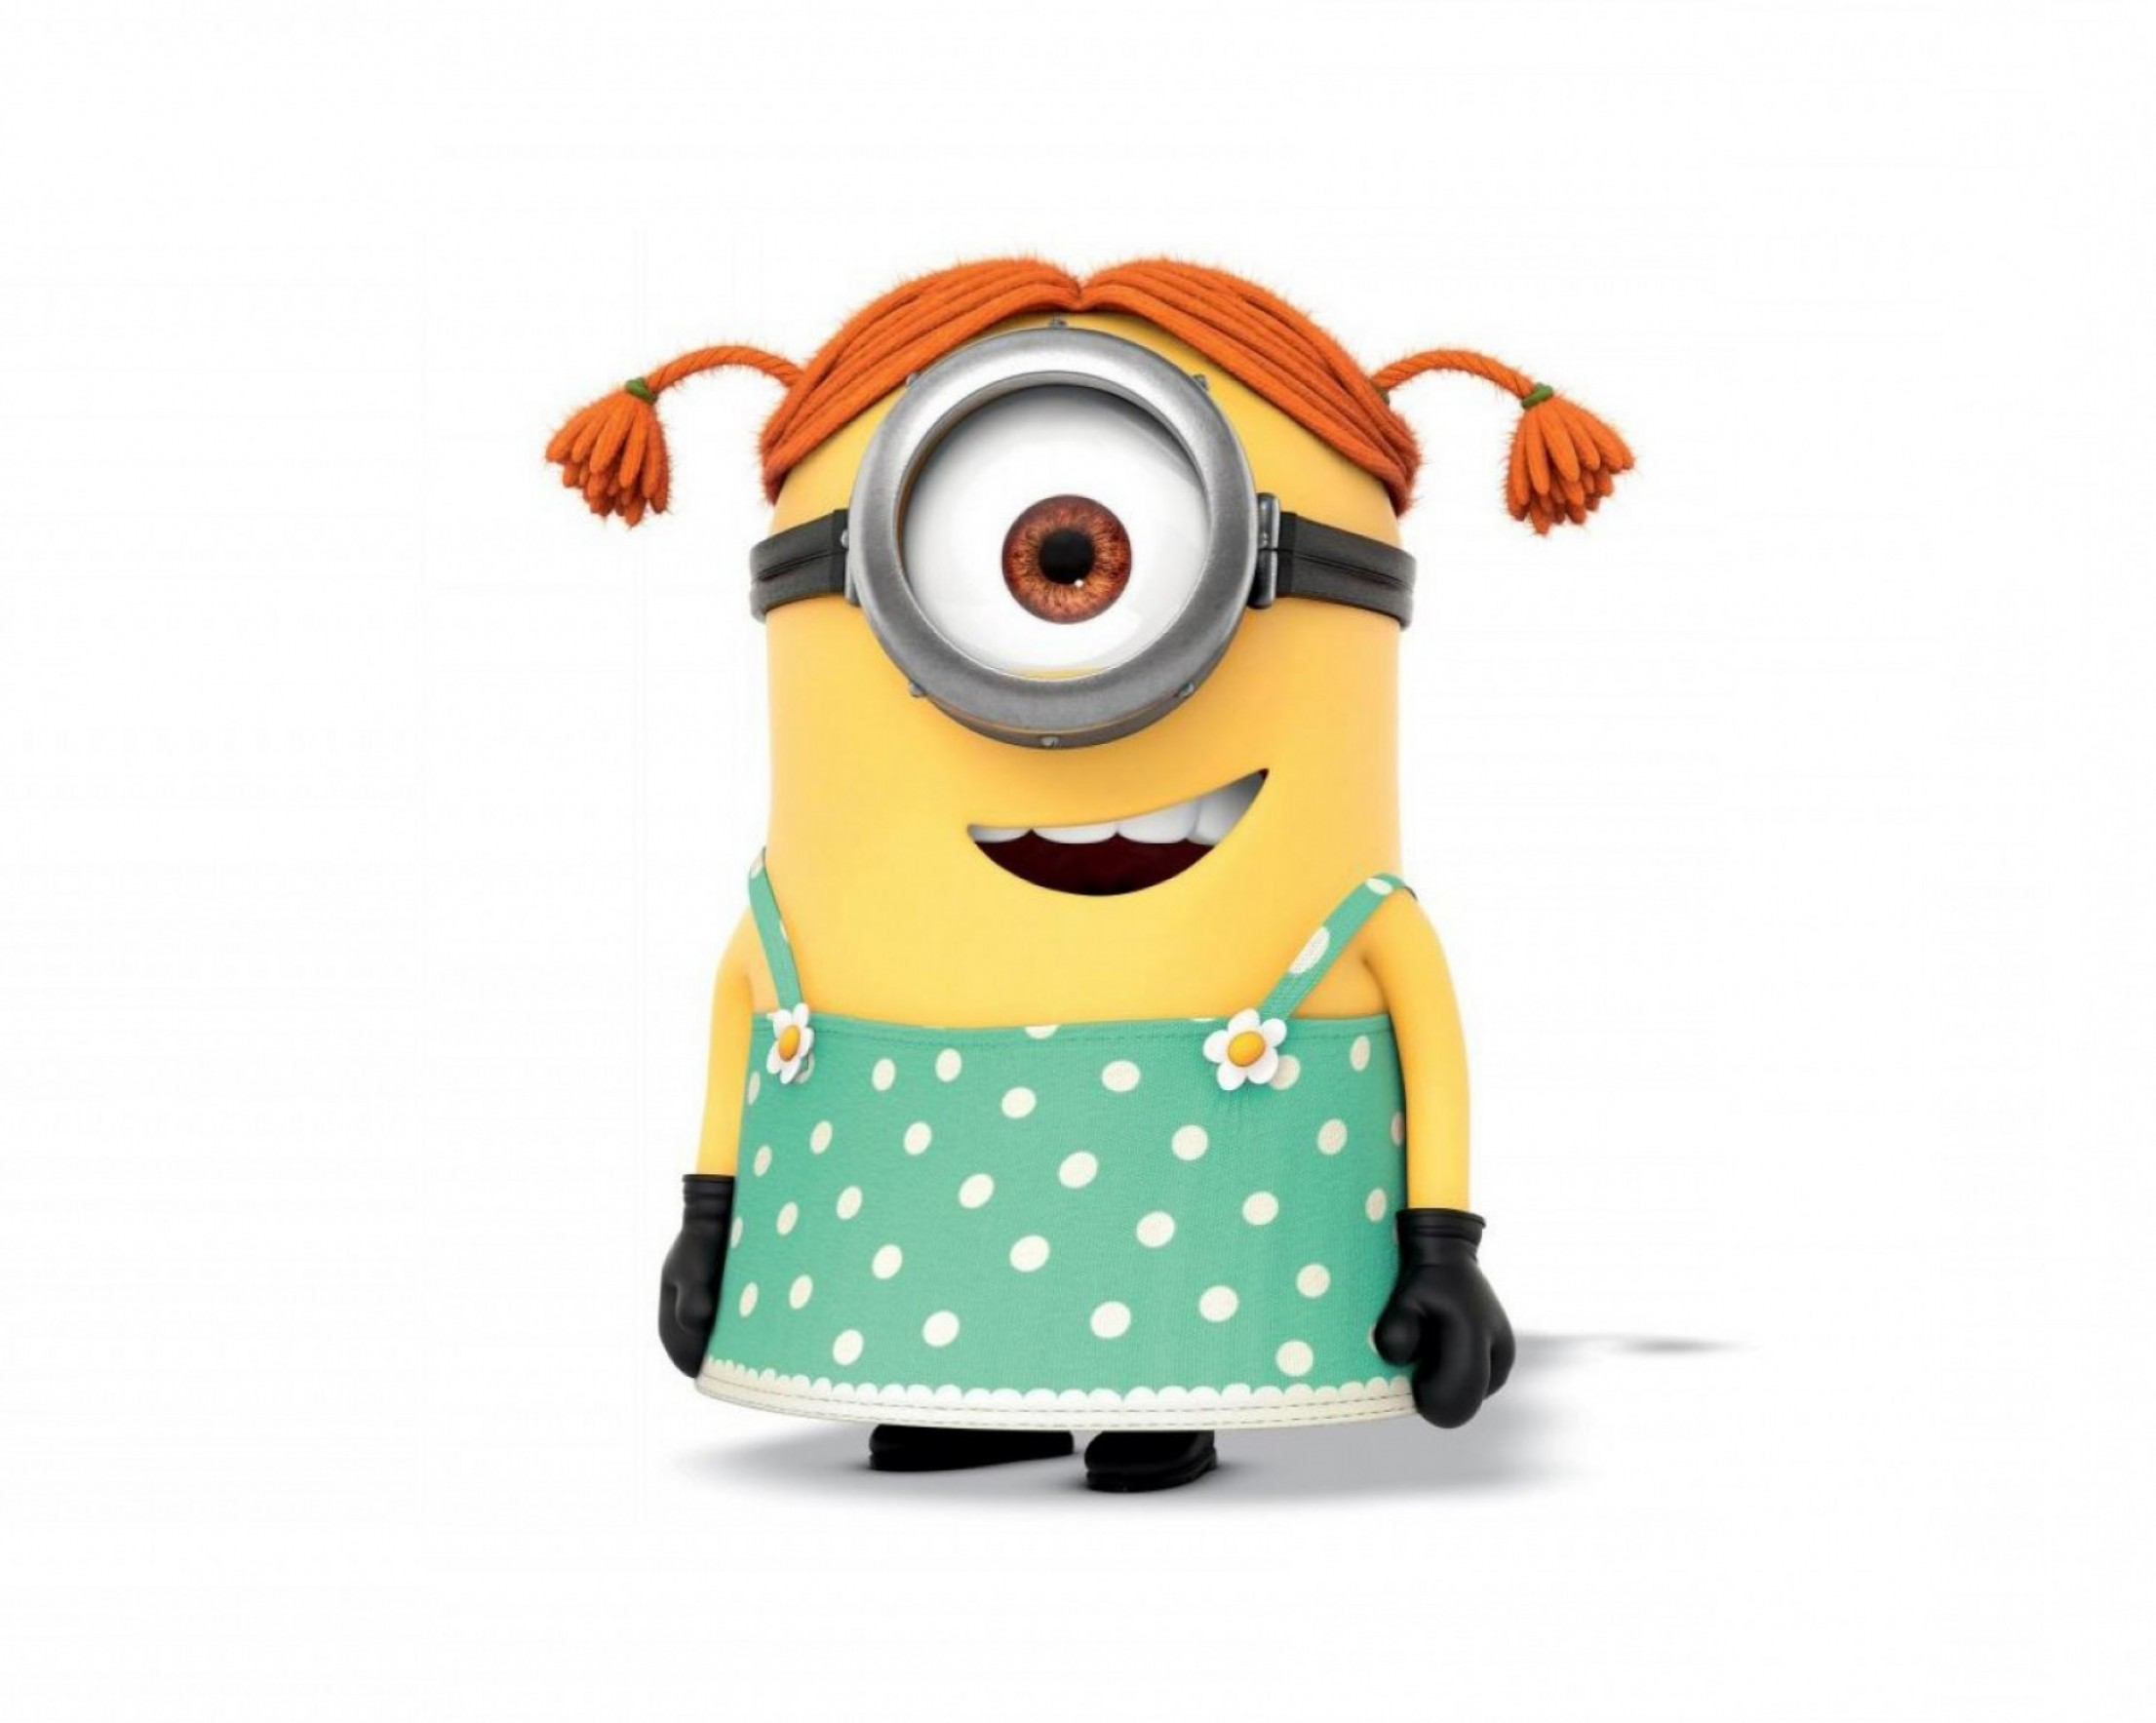 Minion From Despicable Me 2 Vector Image: Top Despicable Me Stuart Girl Minion Images